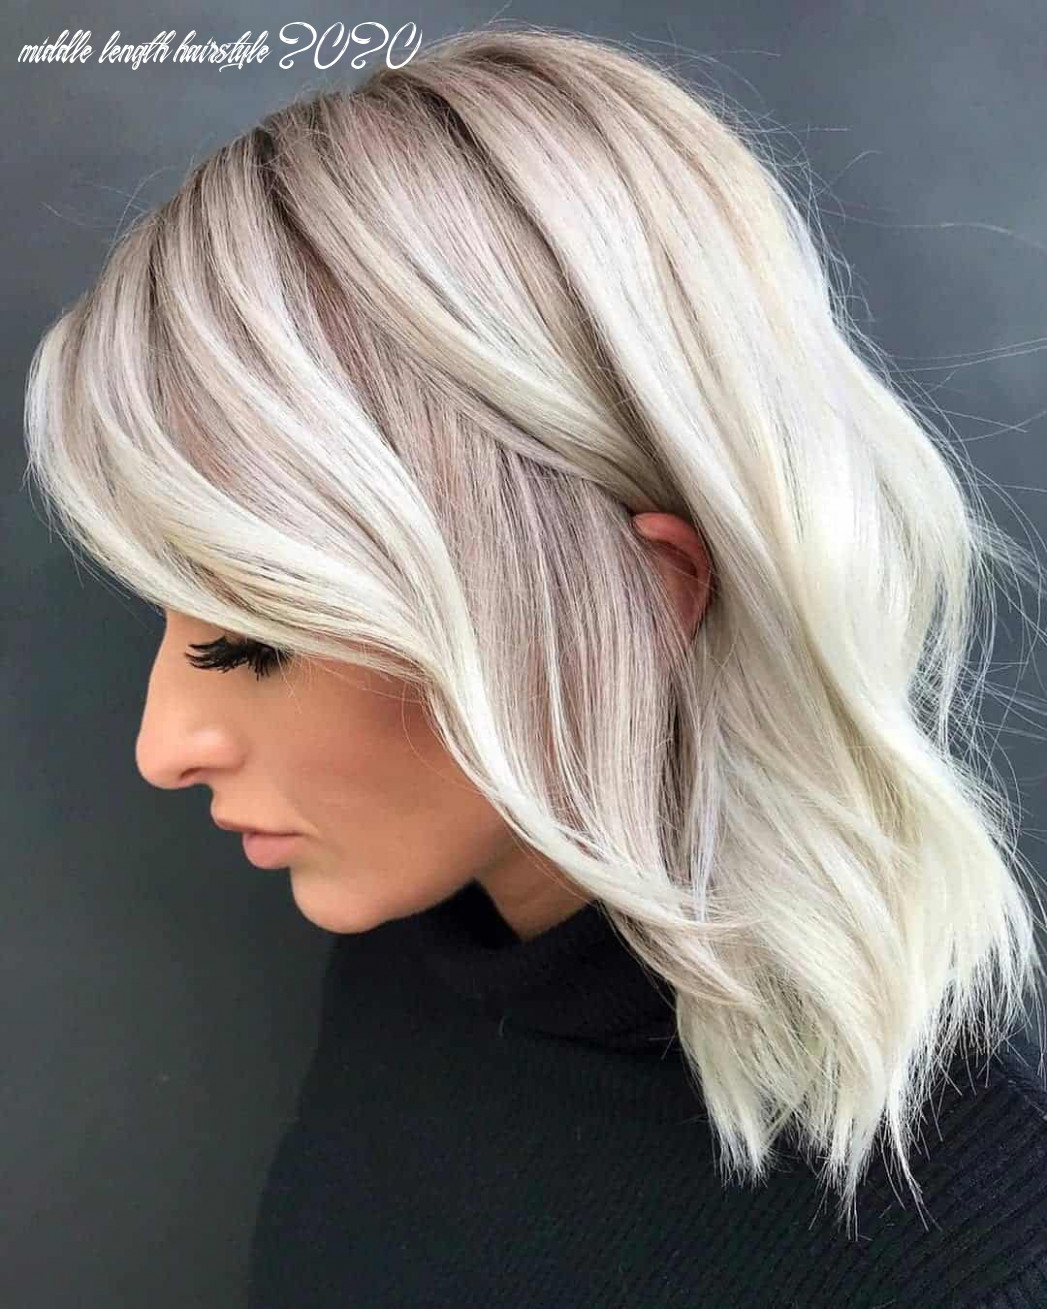 Top 11 womens medium length hairstyles 11 (11 photos videos) middle length hairstyle 2020